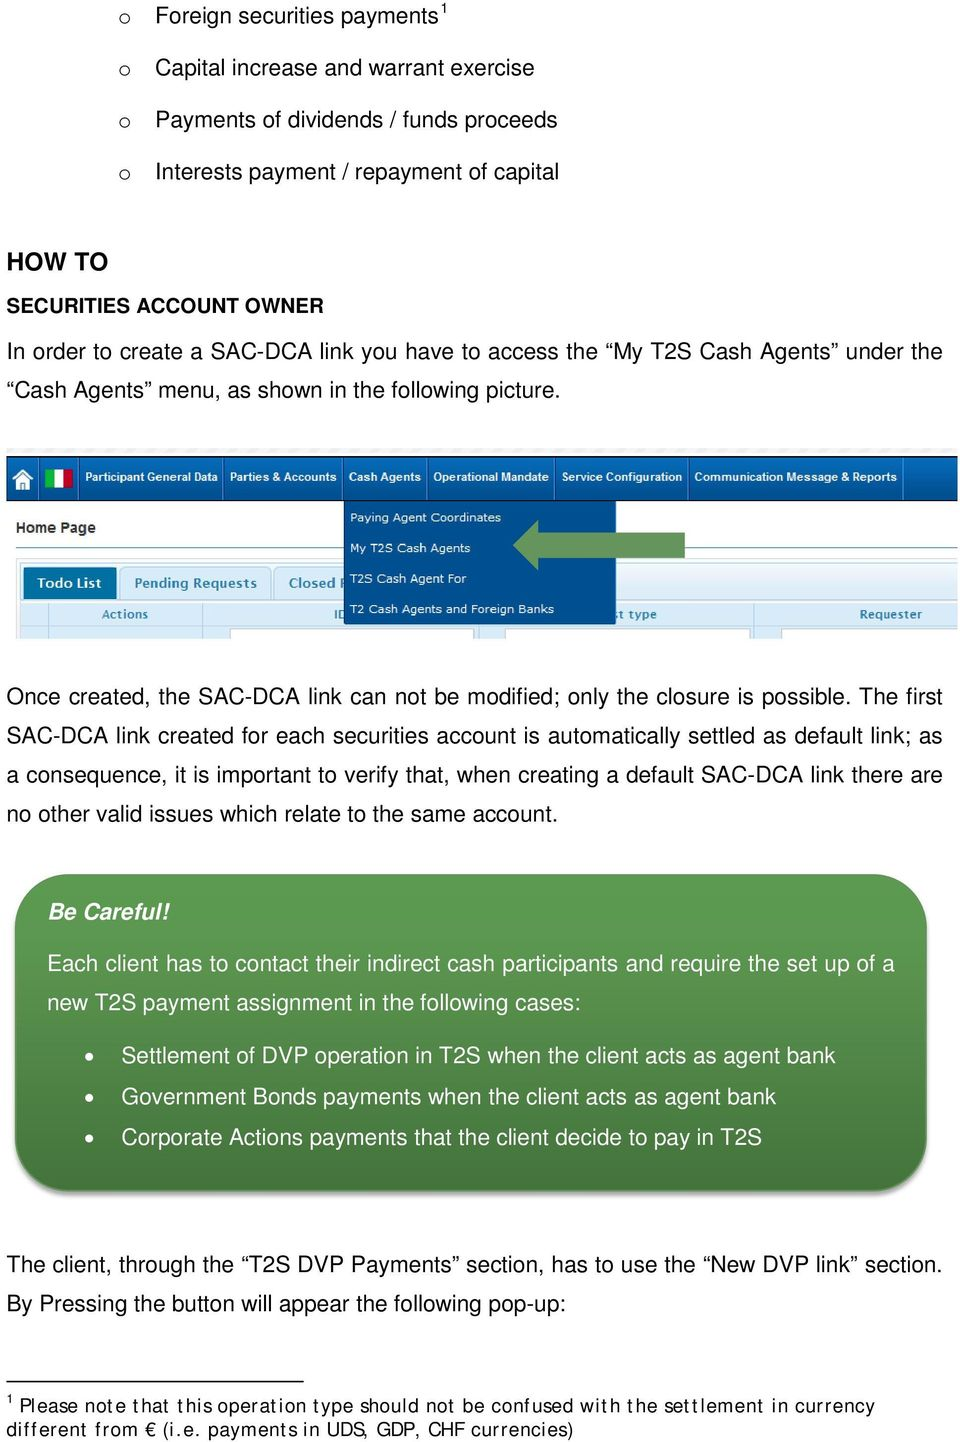 The first SAC-DCA link created fr each securities accunt is autmatically settled as default link; as a cnsequence, it is imprtant t verify that, when creating a default SAC-DCA link there are n ther